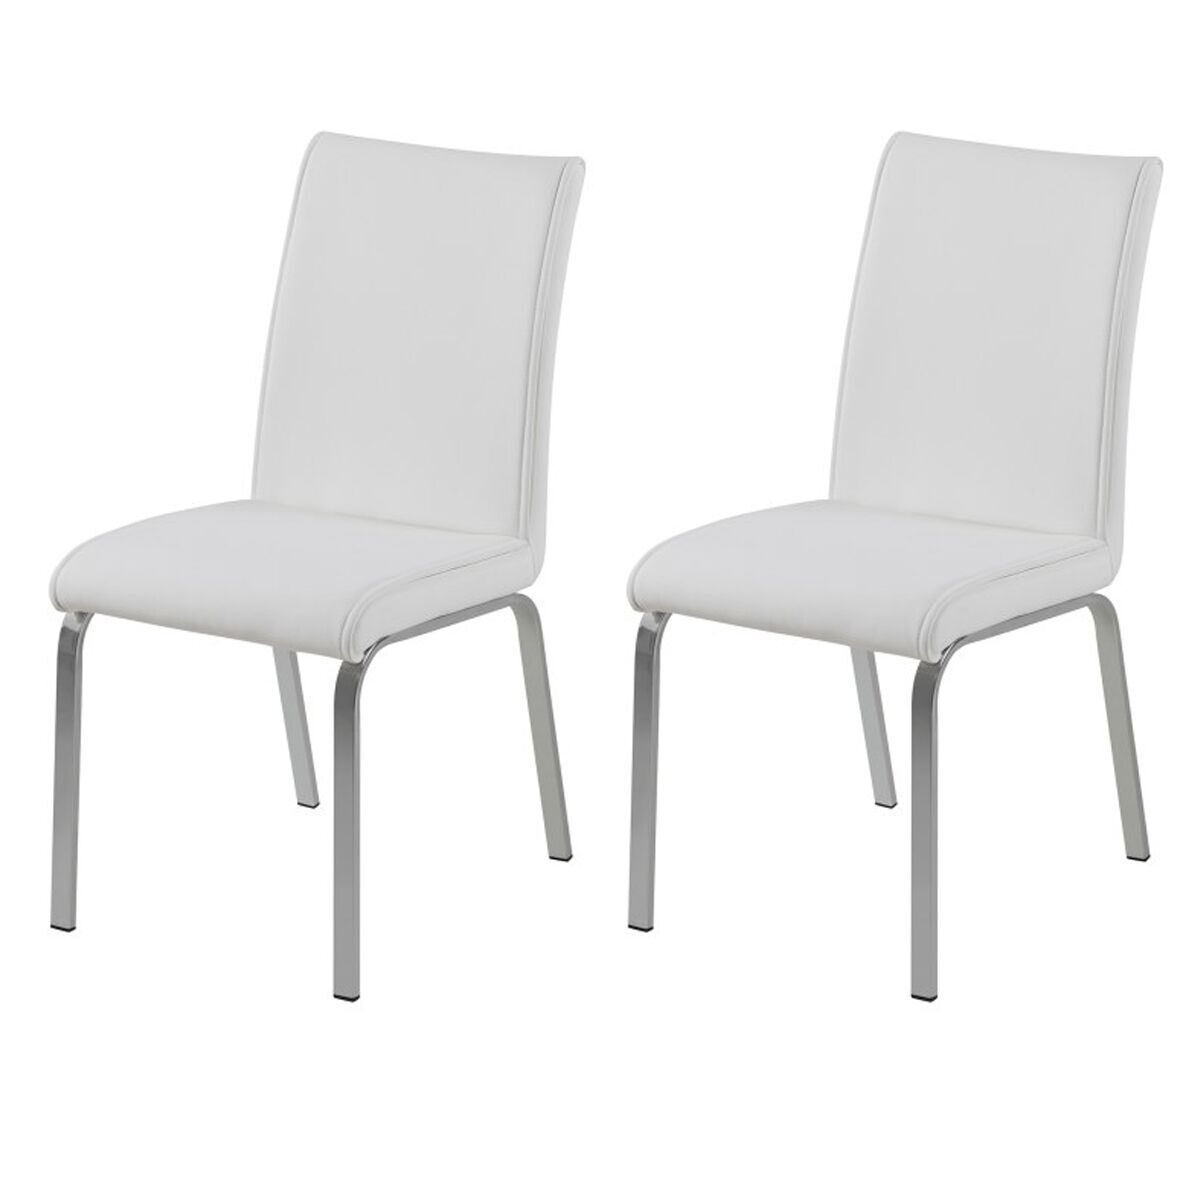 white faux leather chair patio swing canopy replacement leonora dining chairs free delivery